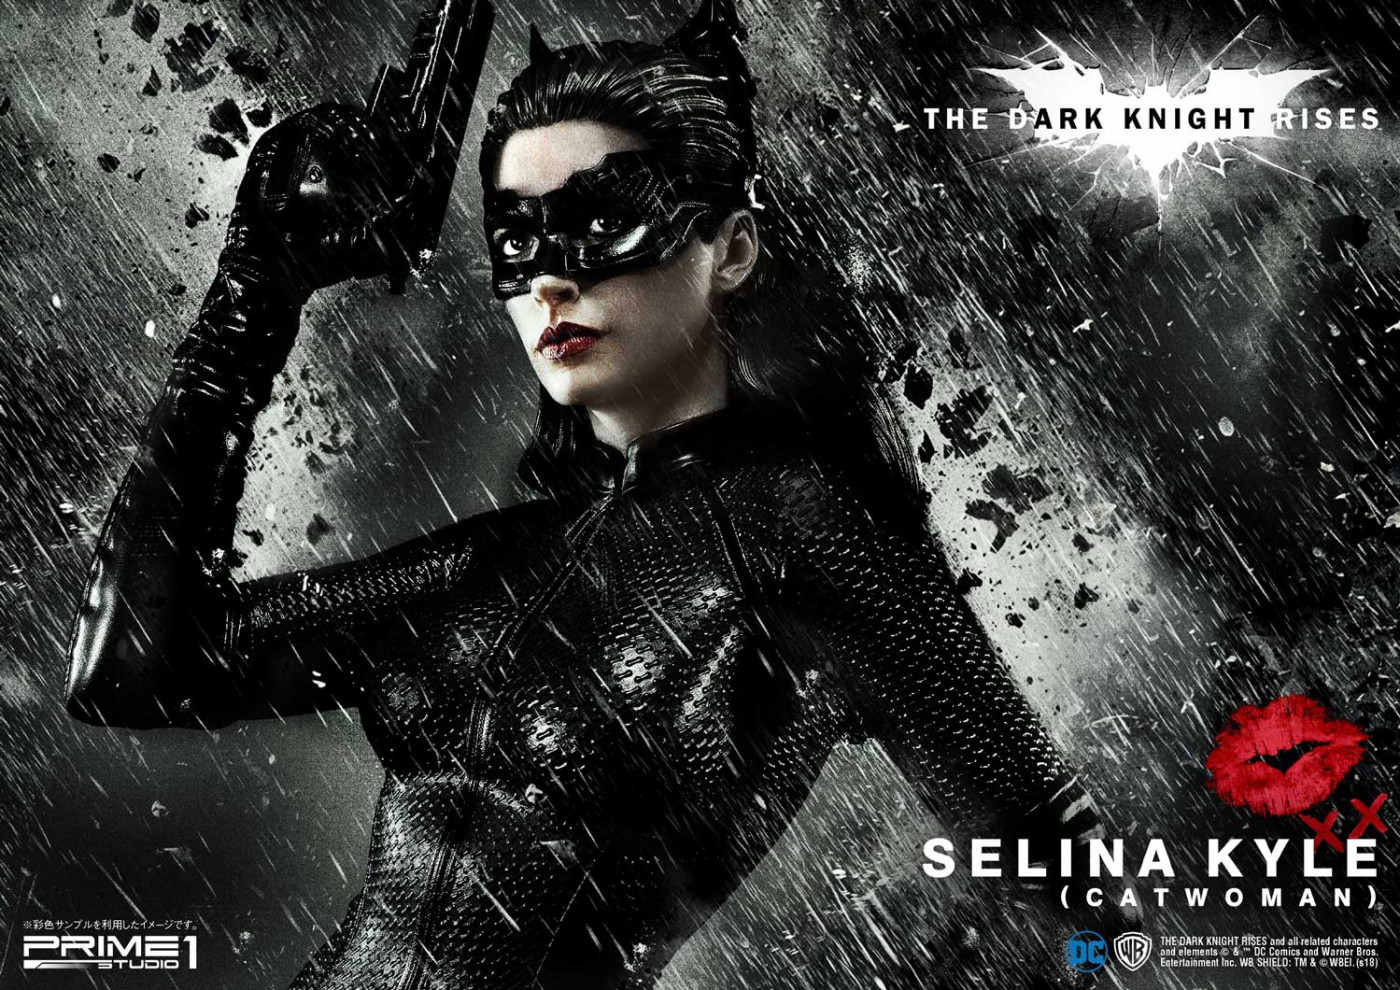 Museum Masterline The Dark Knight Rises (Film) Selina Kyle (Catwoman) EX Version